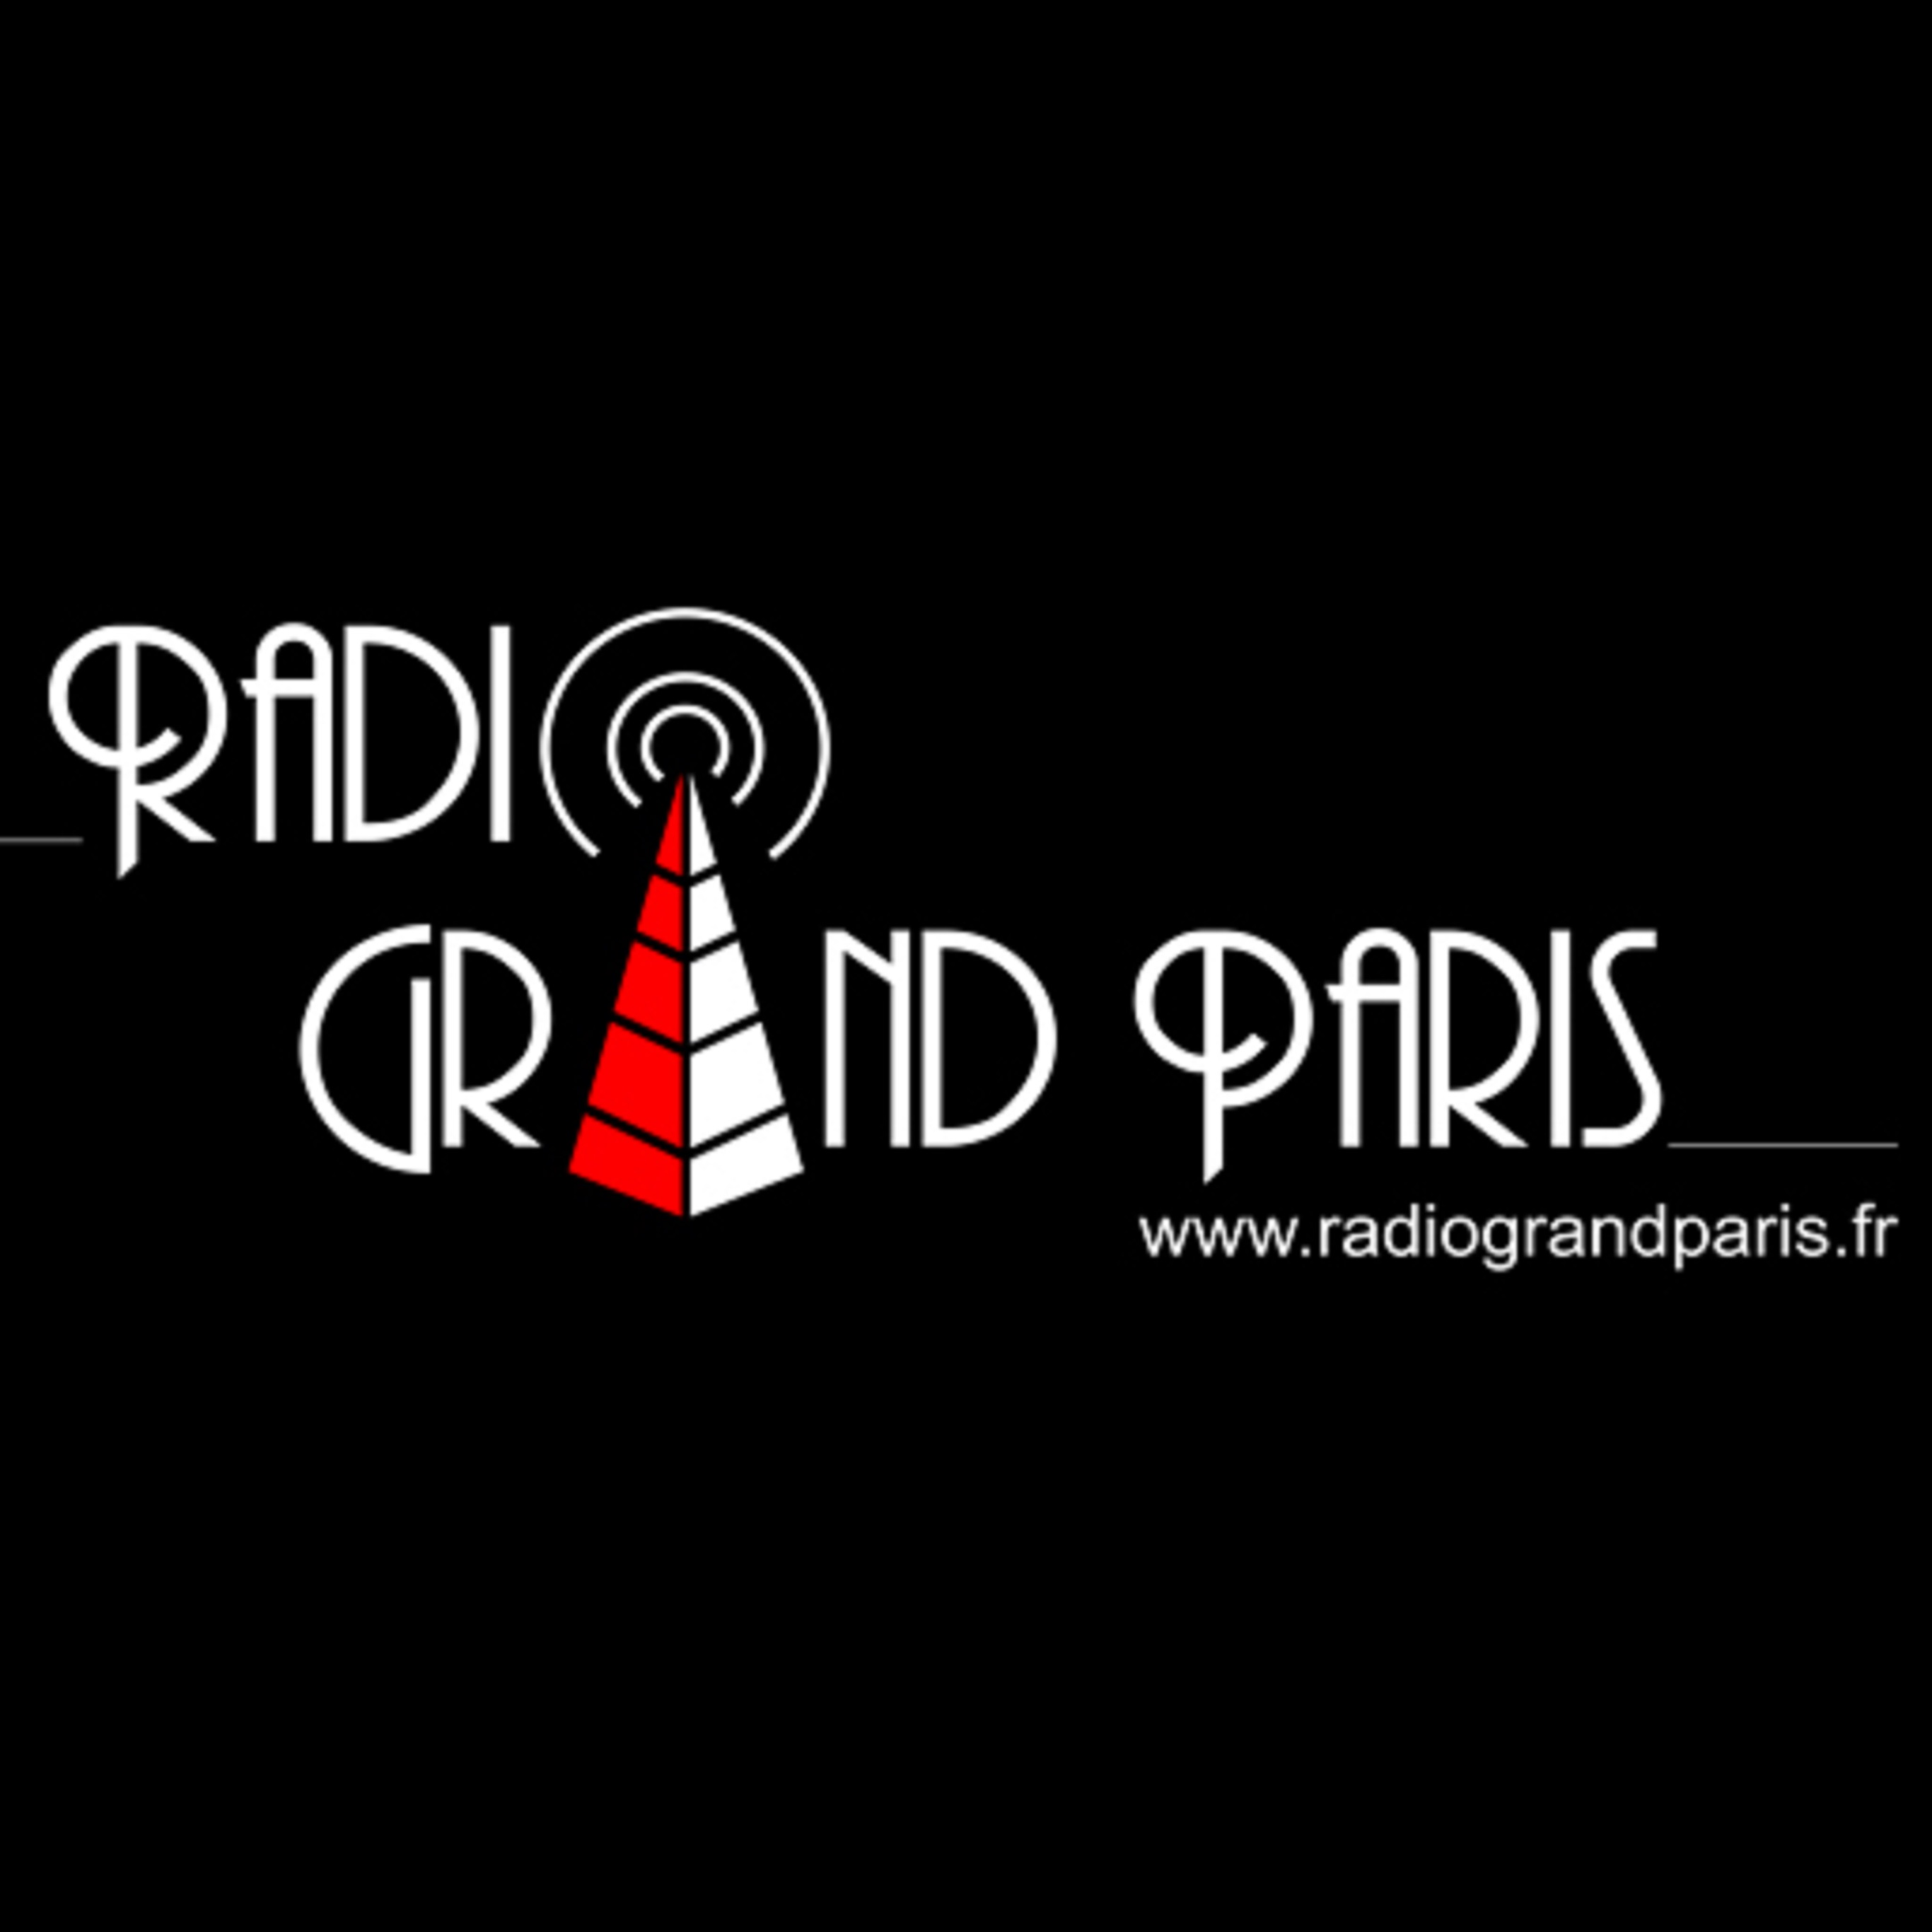 Radio Grand Paris